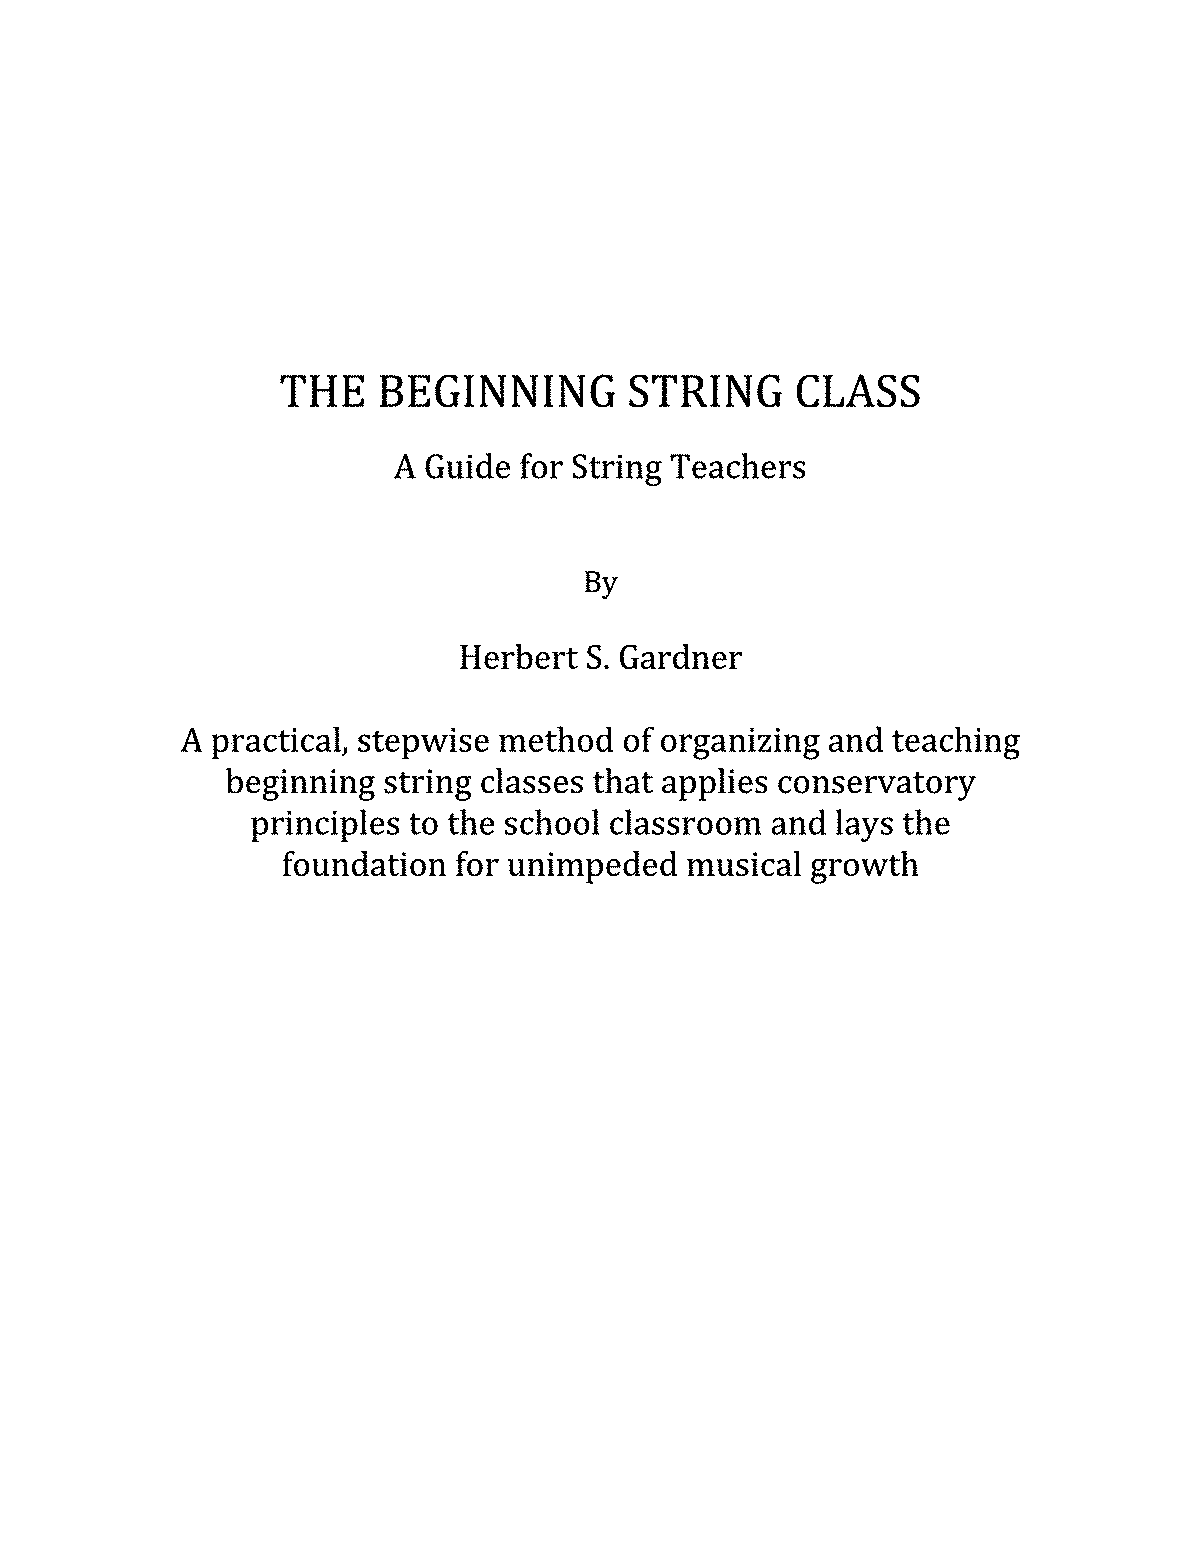 PMLP671115-Beginning String Class, Part 1-Introduction.pdf